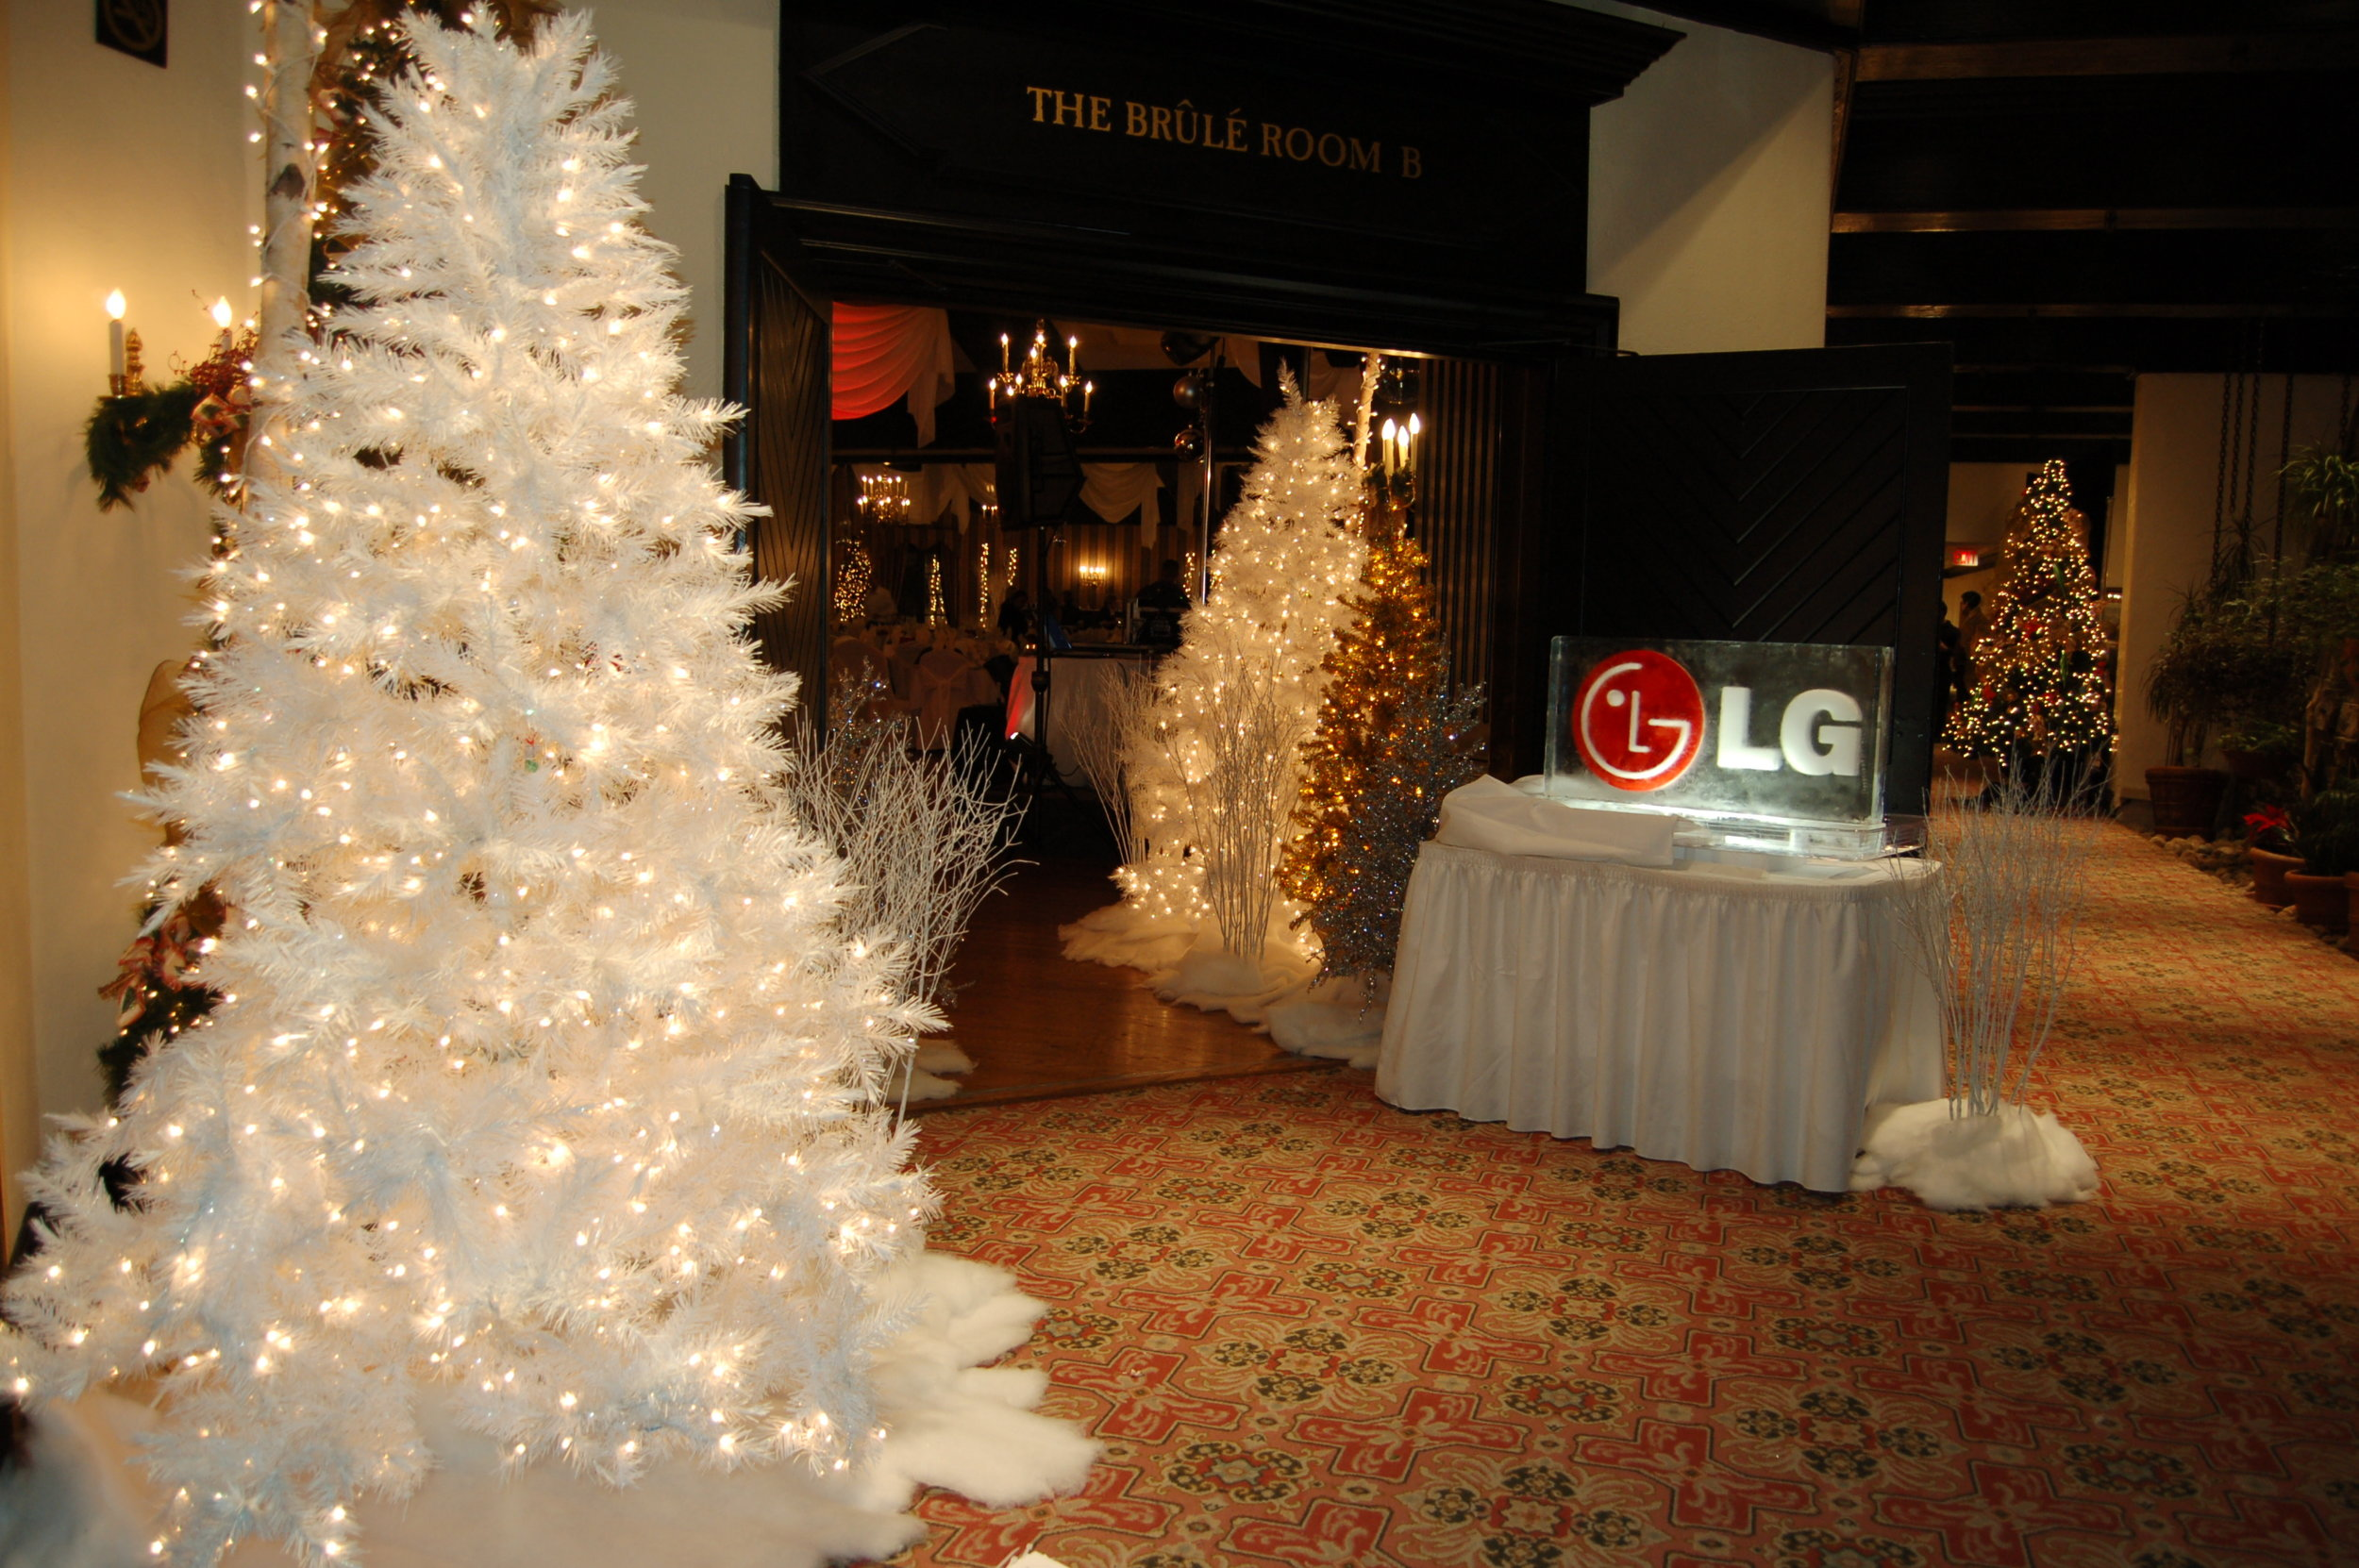 LG Corporate Holiday Party Decor